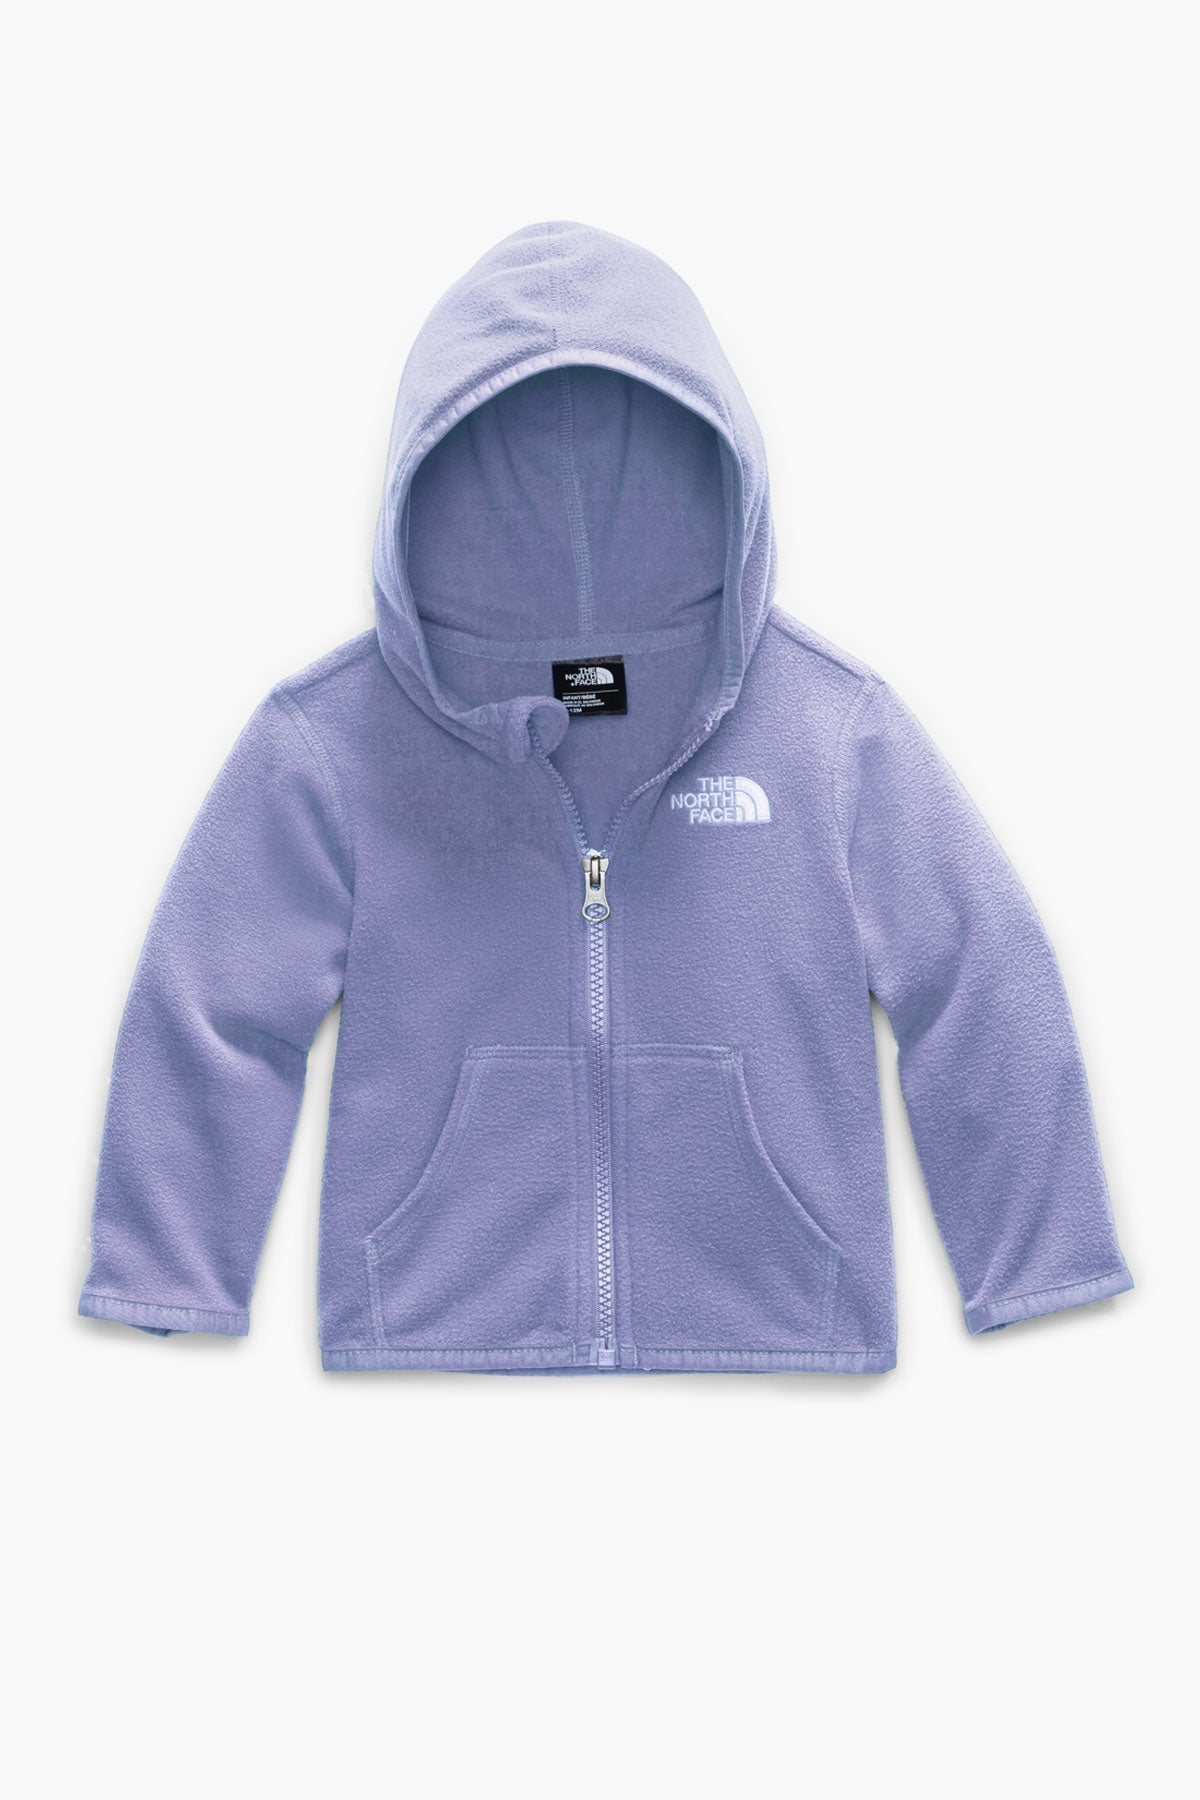 The North Face  Kids Glacier Full Zip Hoodie - Sweet Lavender